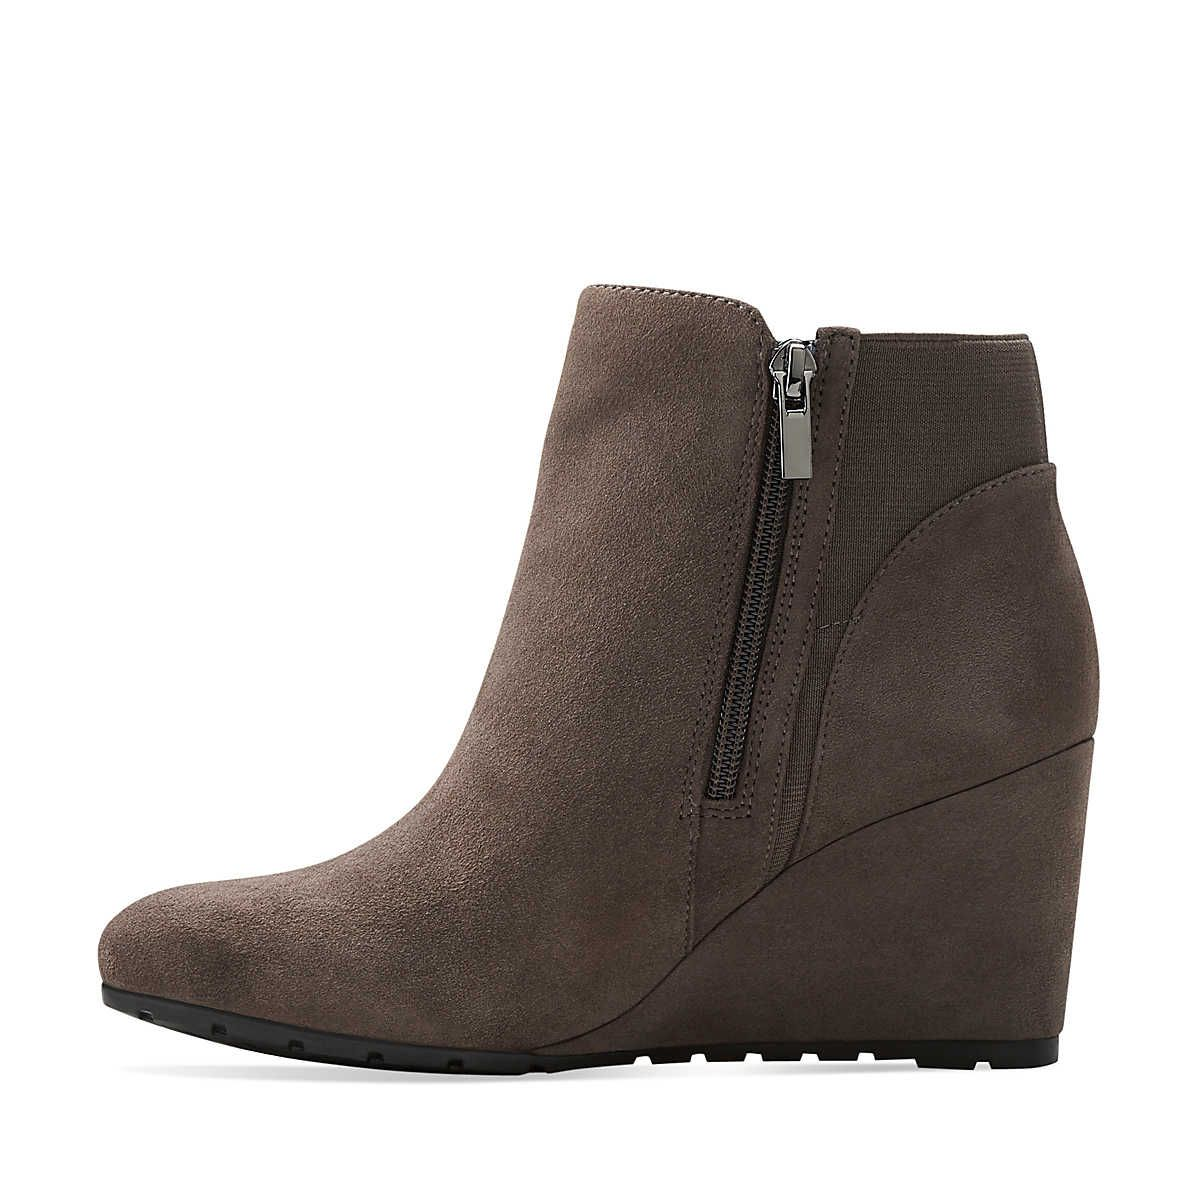 Rosepoint Bell in Grey Suede - Womens Boots from Clarks